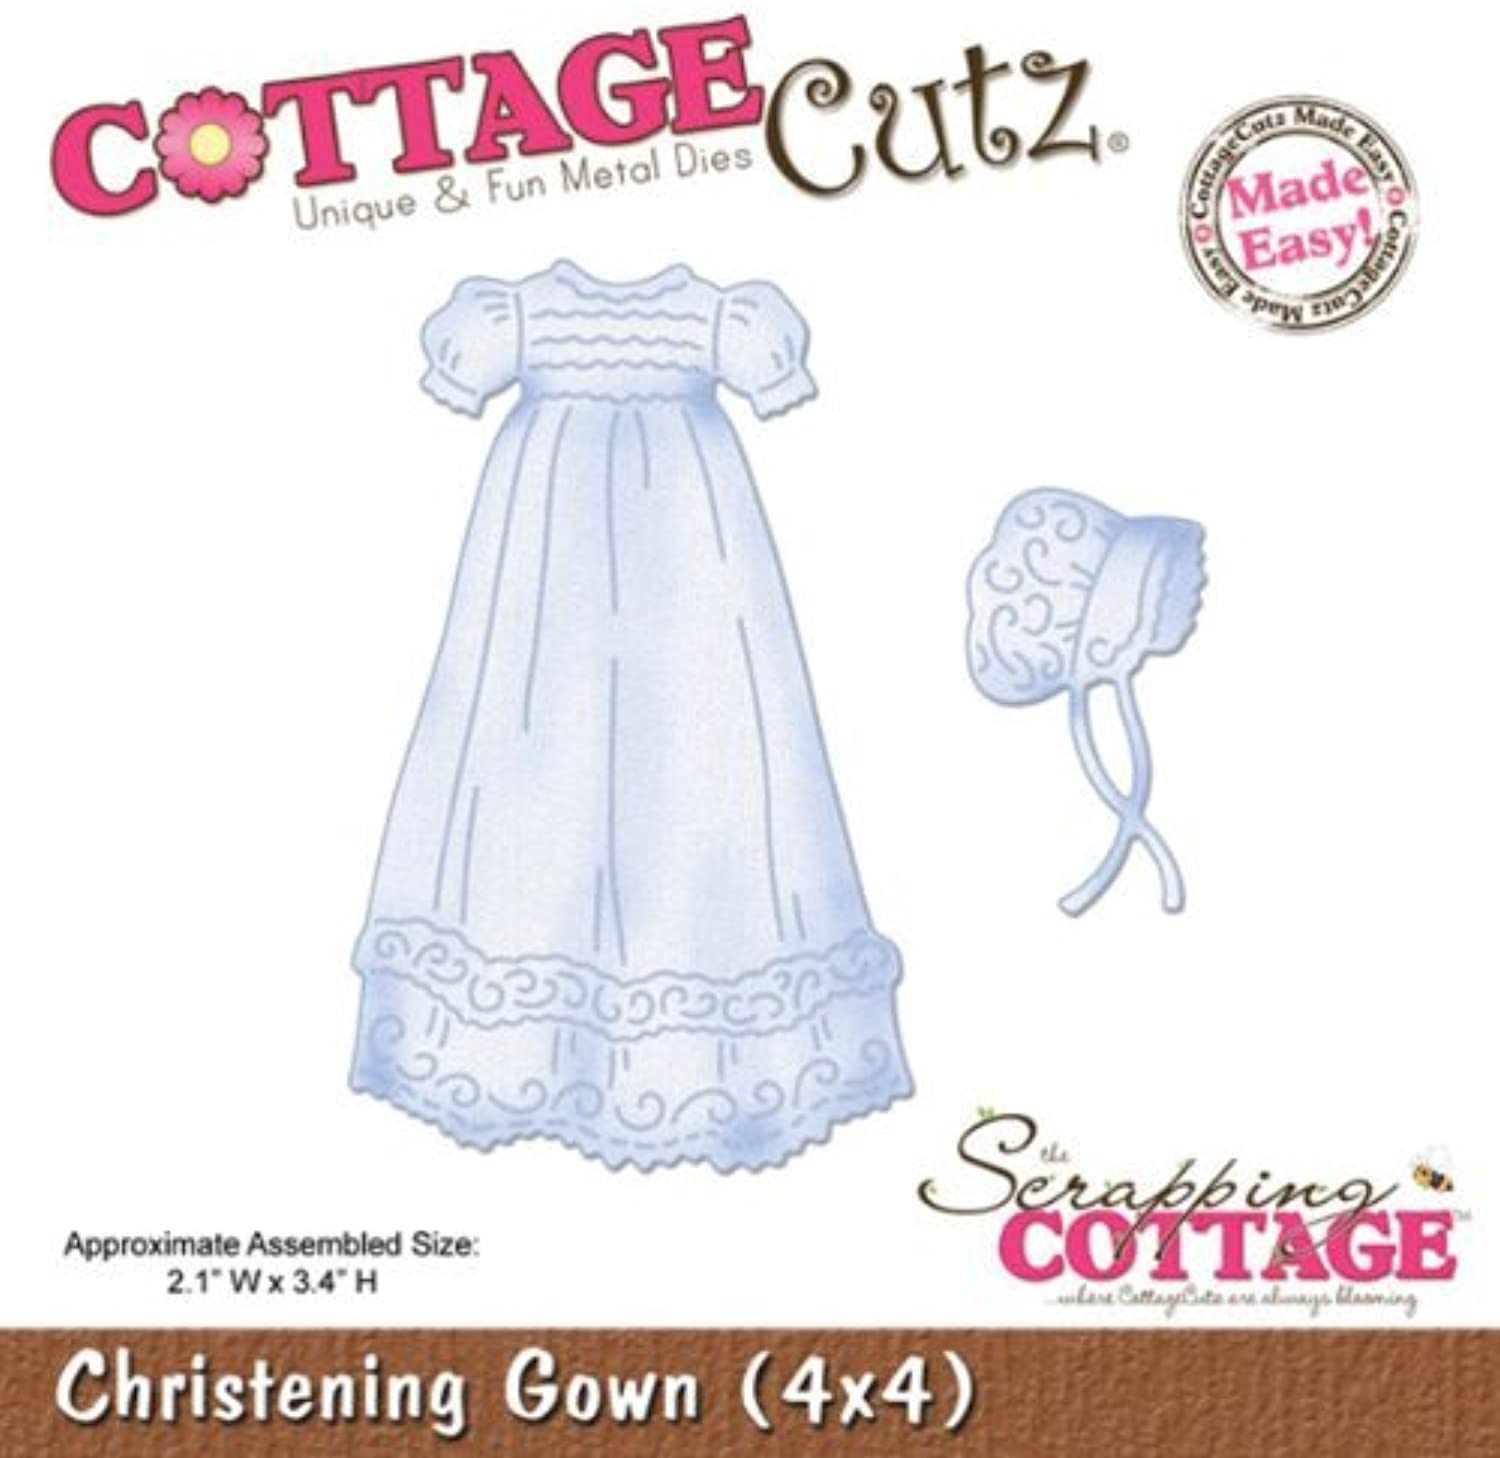 CottageCutz Die Cuts with Foam, 4 by 4-Inch, Christening Gown Made Easy by CottageCutz B01KBBDSJ2  | Zürich